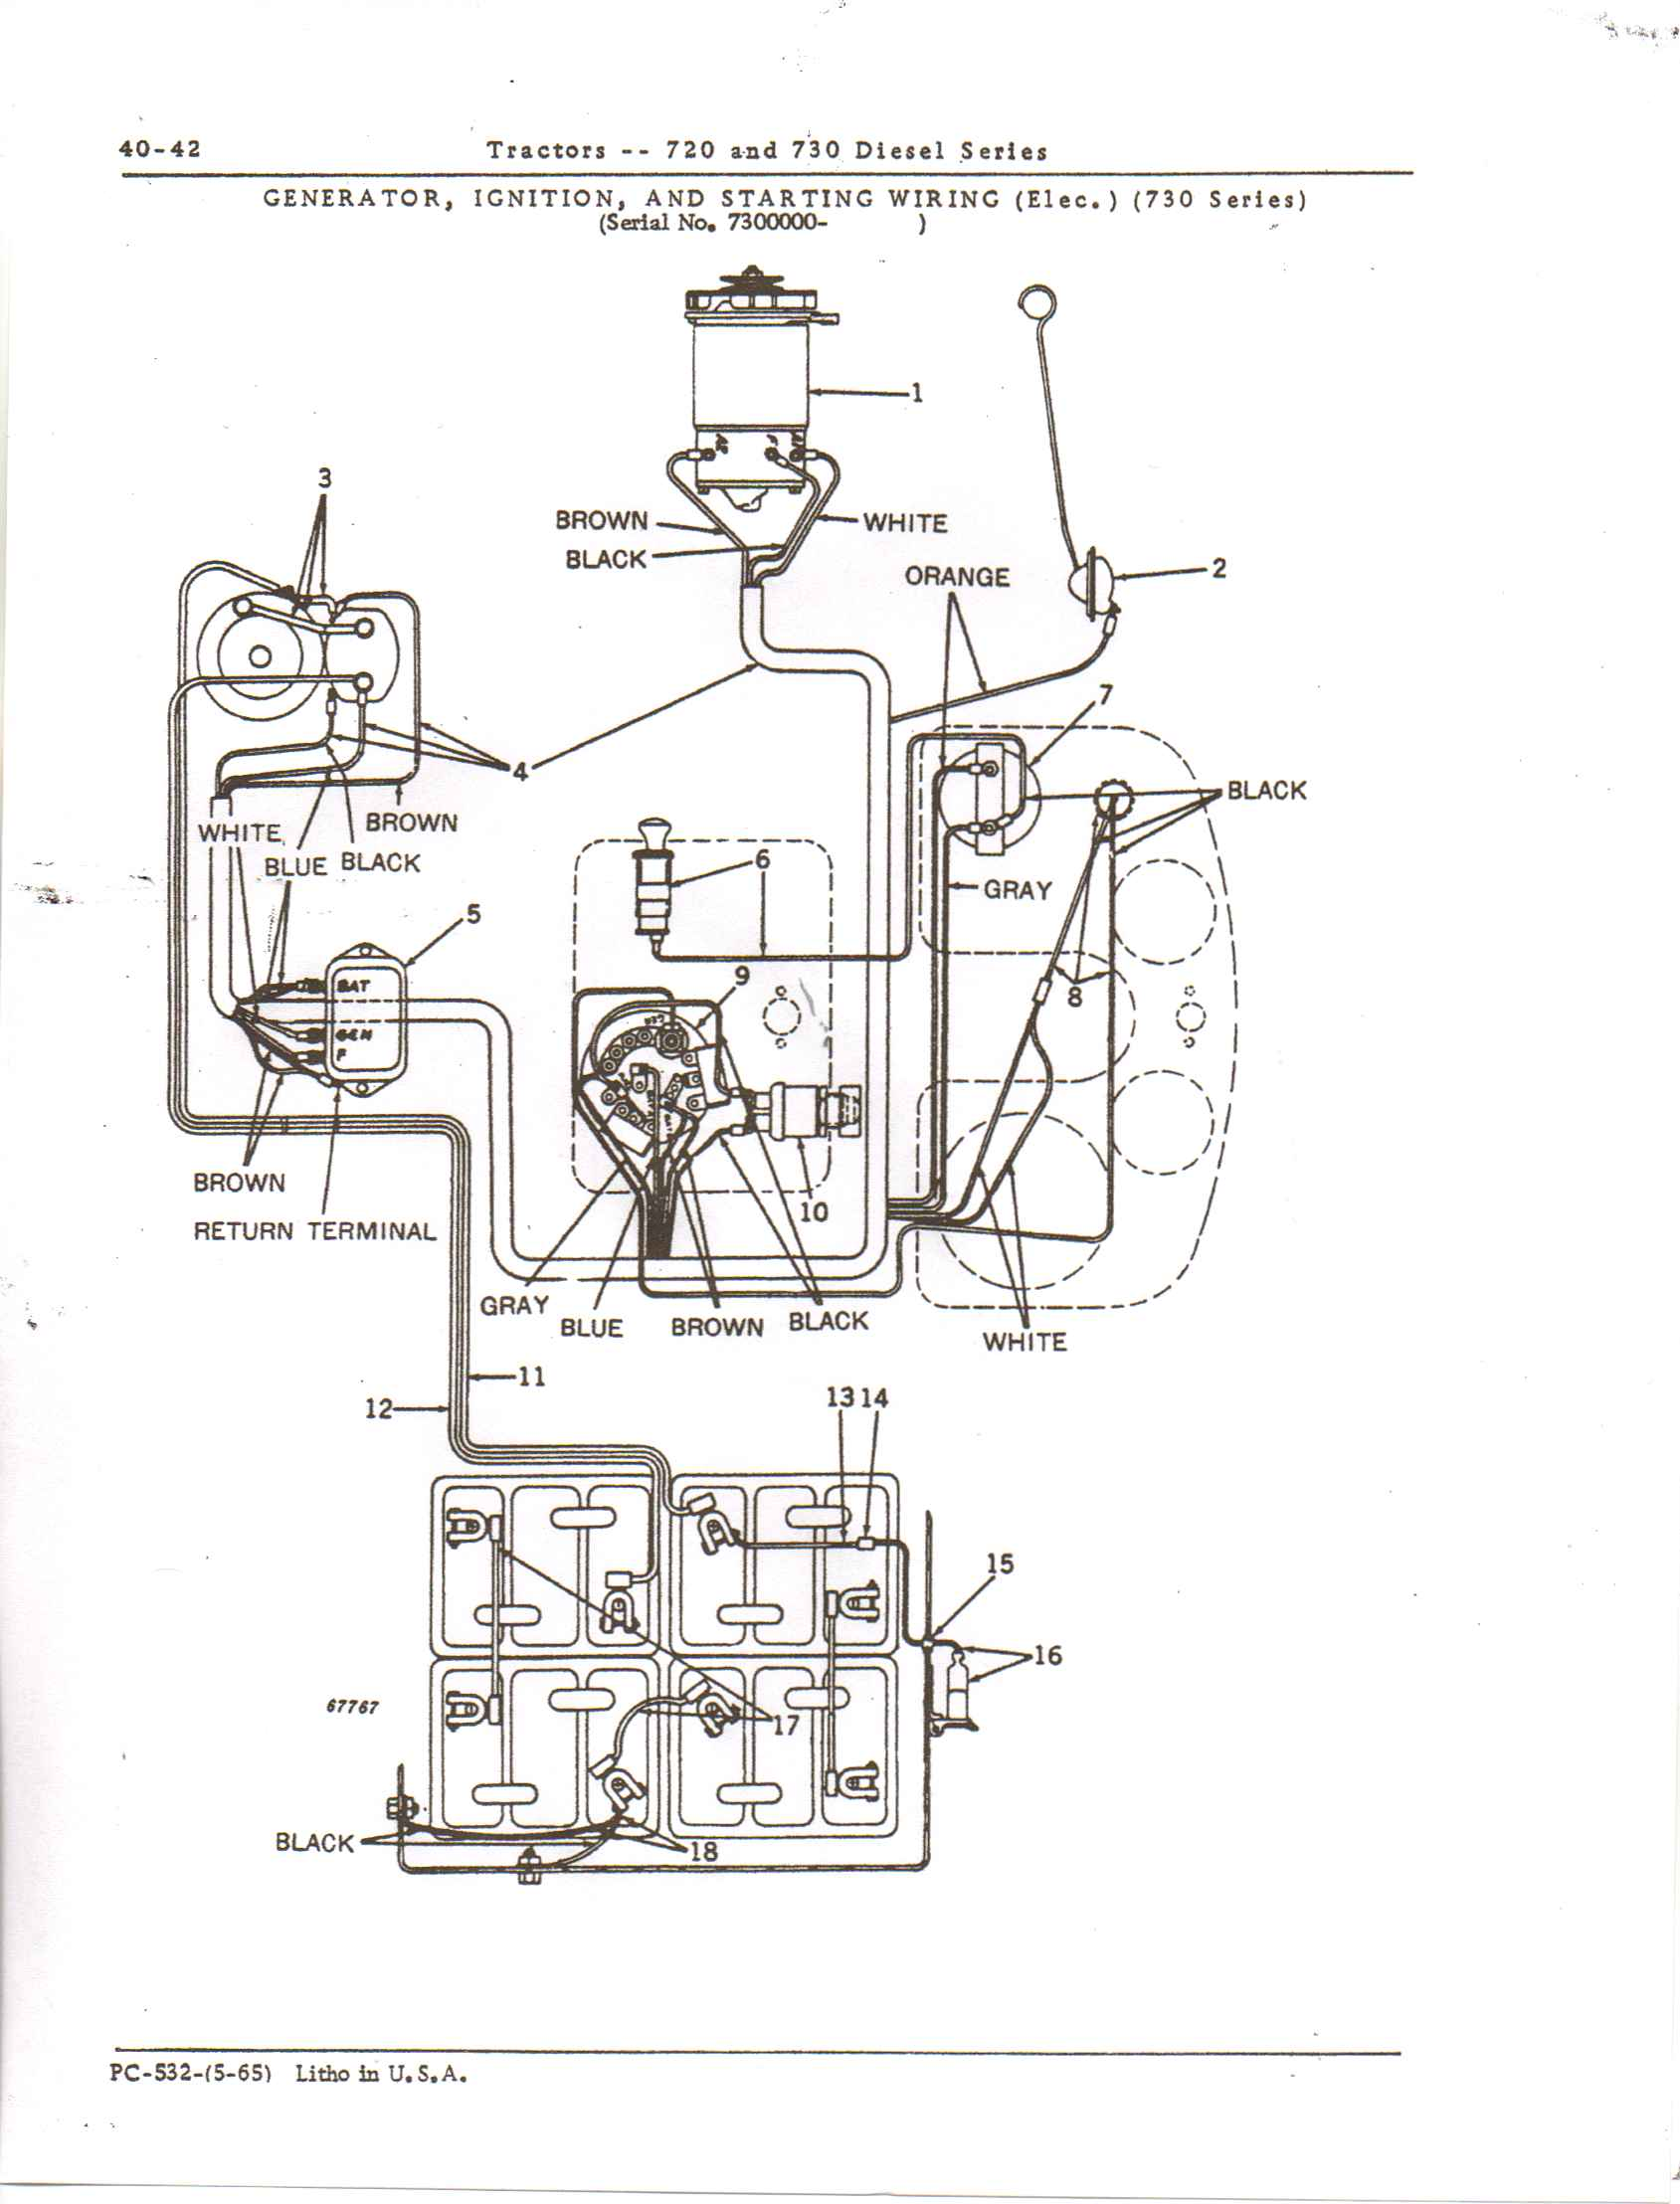 RepairGuideContent together with RV Electricity further CTEKD250S moreover Briggs And Stratton 12 5 Hp Wiring Diagram together with P 0900c15280067fd2. on trailer battery diagram